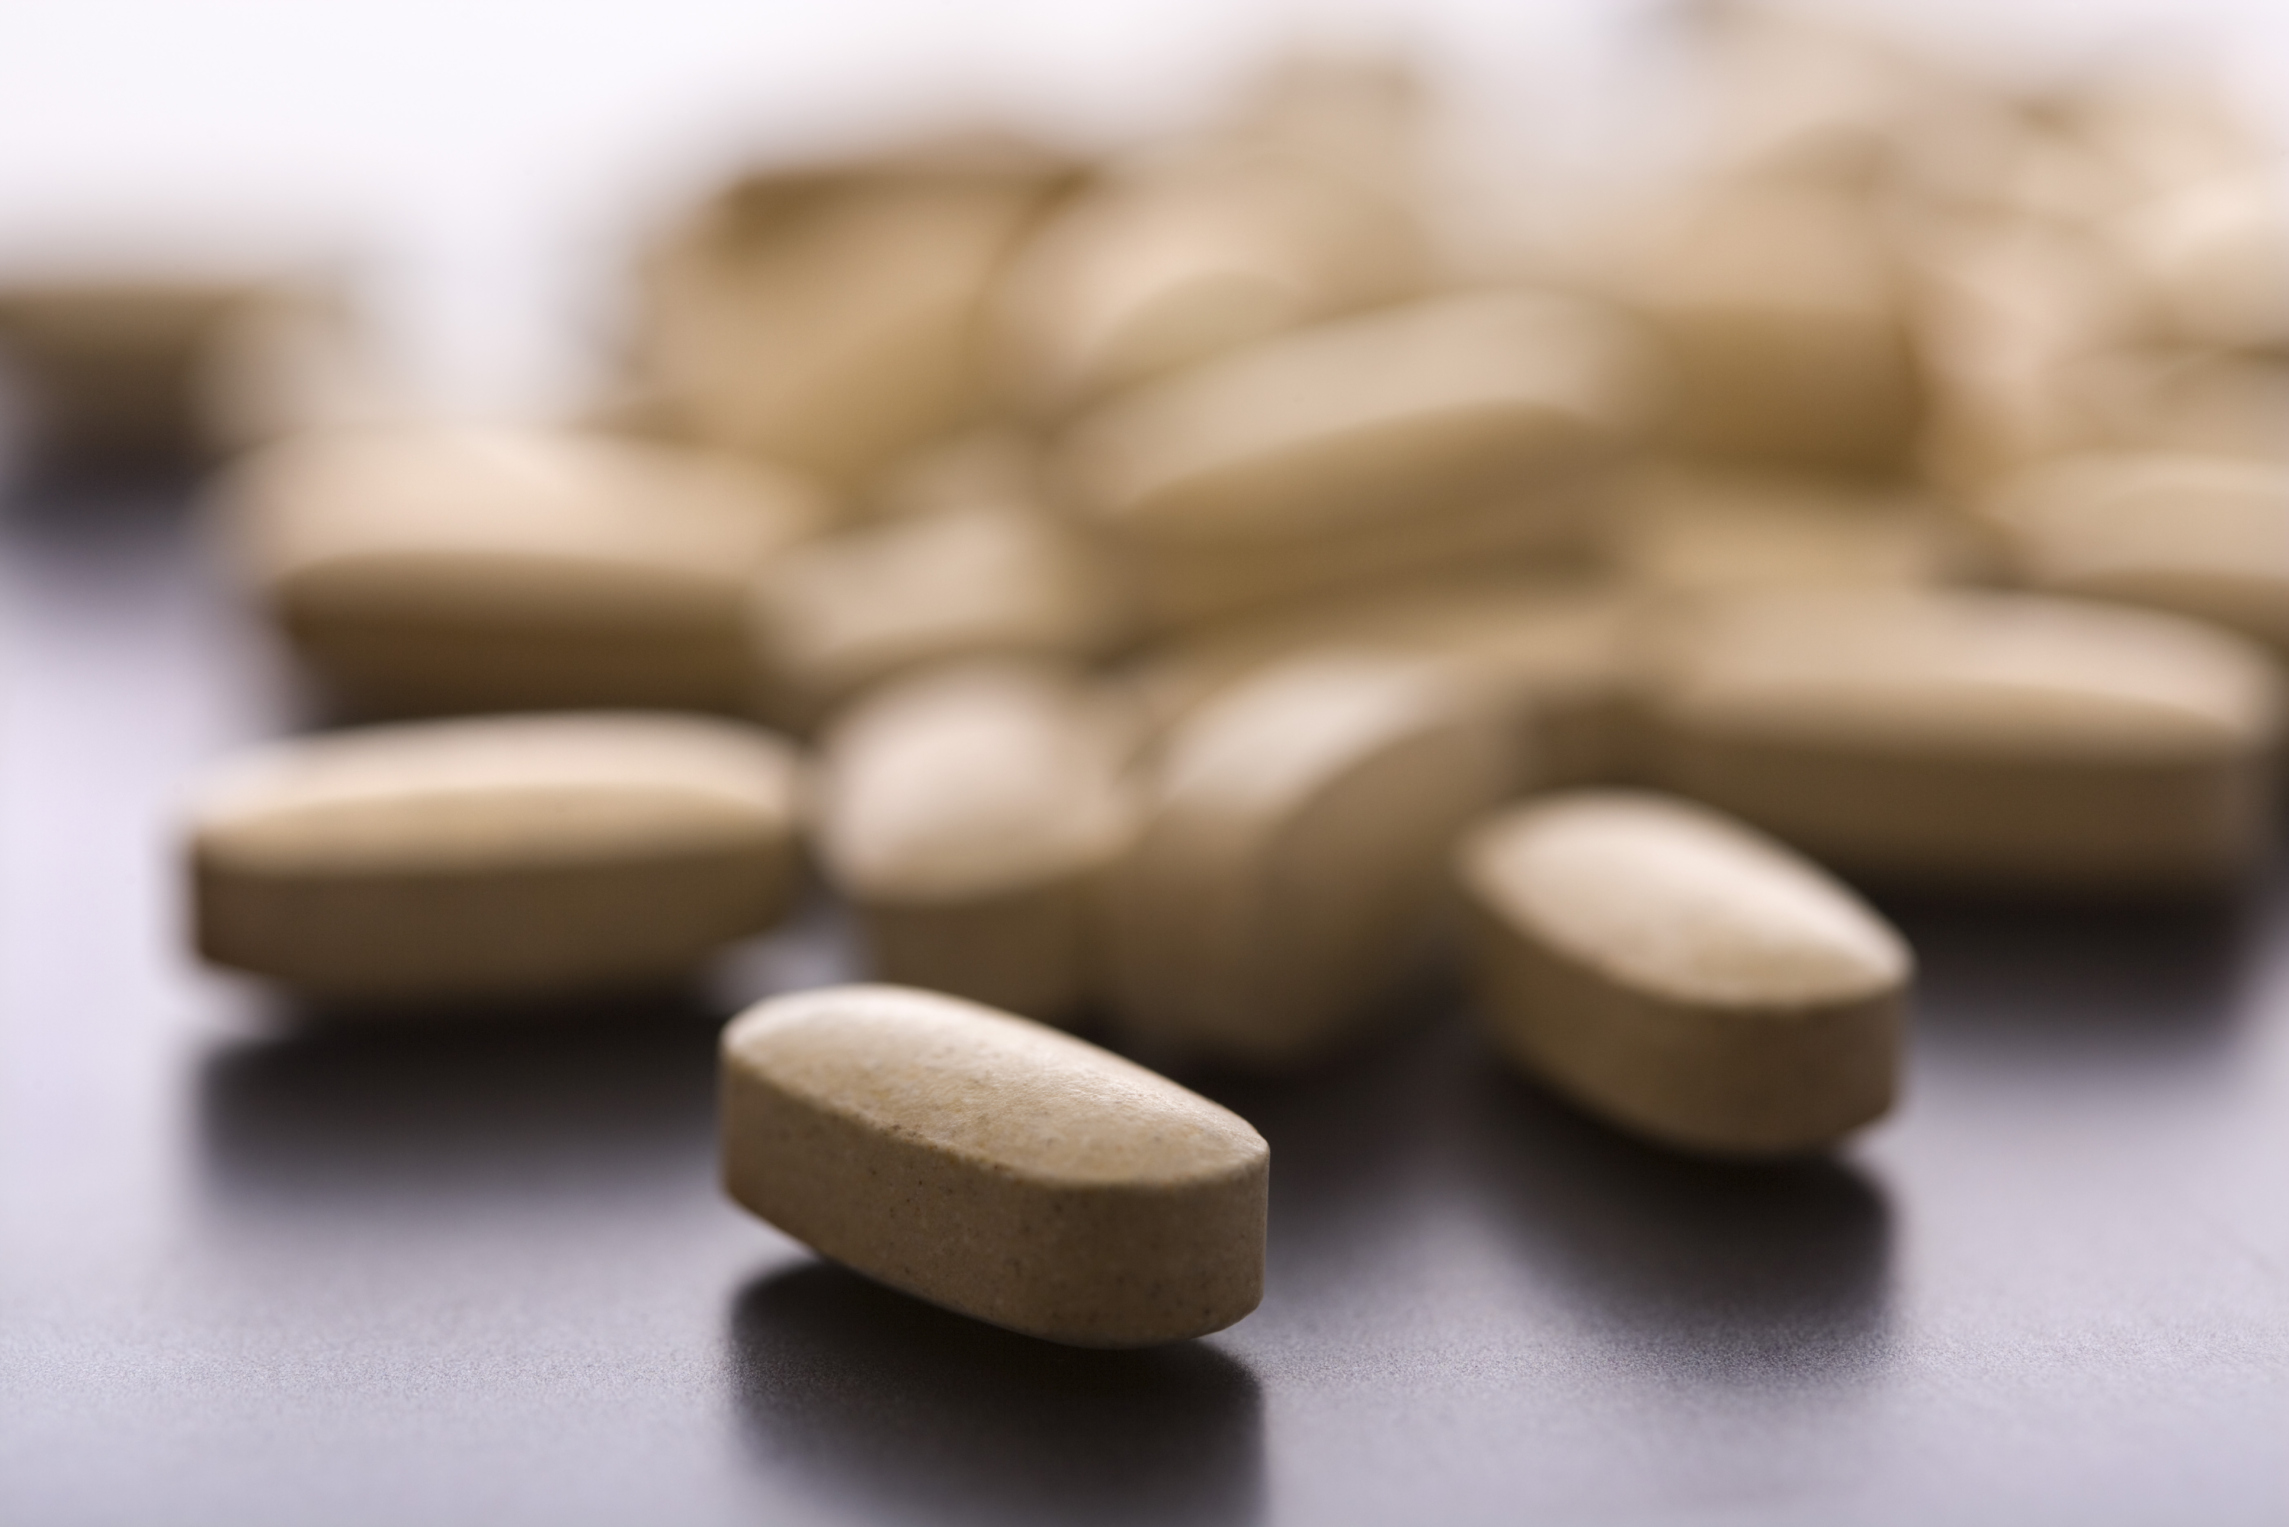 Taking calcium pills is more likely to cause excessive calcium intake than drinking milk.